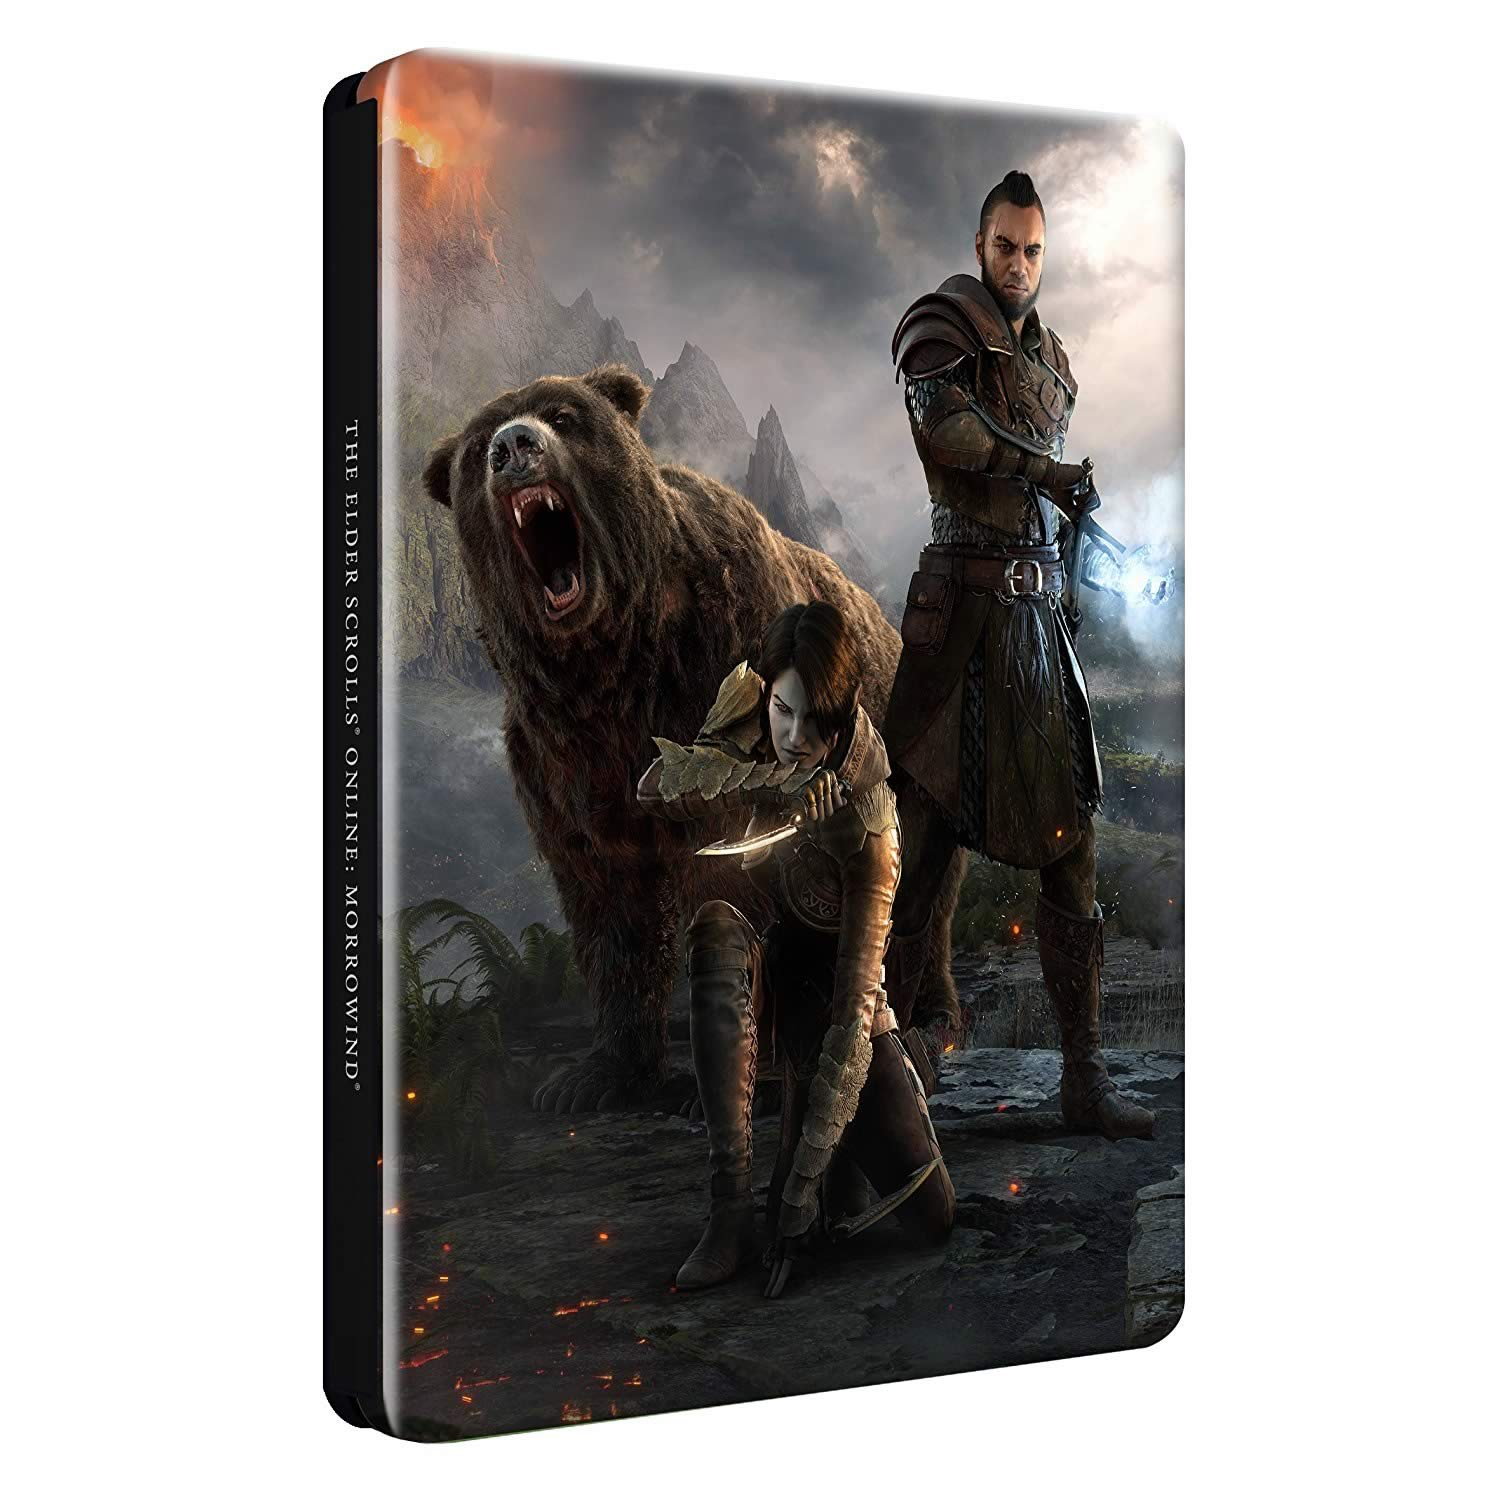 THE ELDER SCROLLS ONLINE: MORROWIND Steelbook Case (NO GAME INCLUDED) - THE ELDER SCROLLS ONLINE: MORROWIND Steelbook ΘΗΚΗ (ΔΕΝ ΠΕΡΙΕΧΕΤΑΙ ΠΑΙΧΝΙΔΙ) (PC, PS4, XBOX ONE)